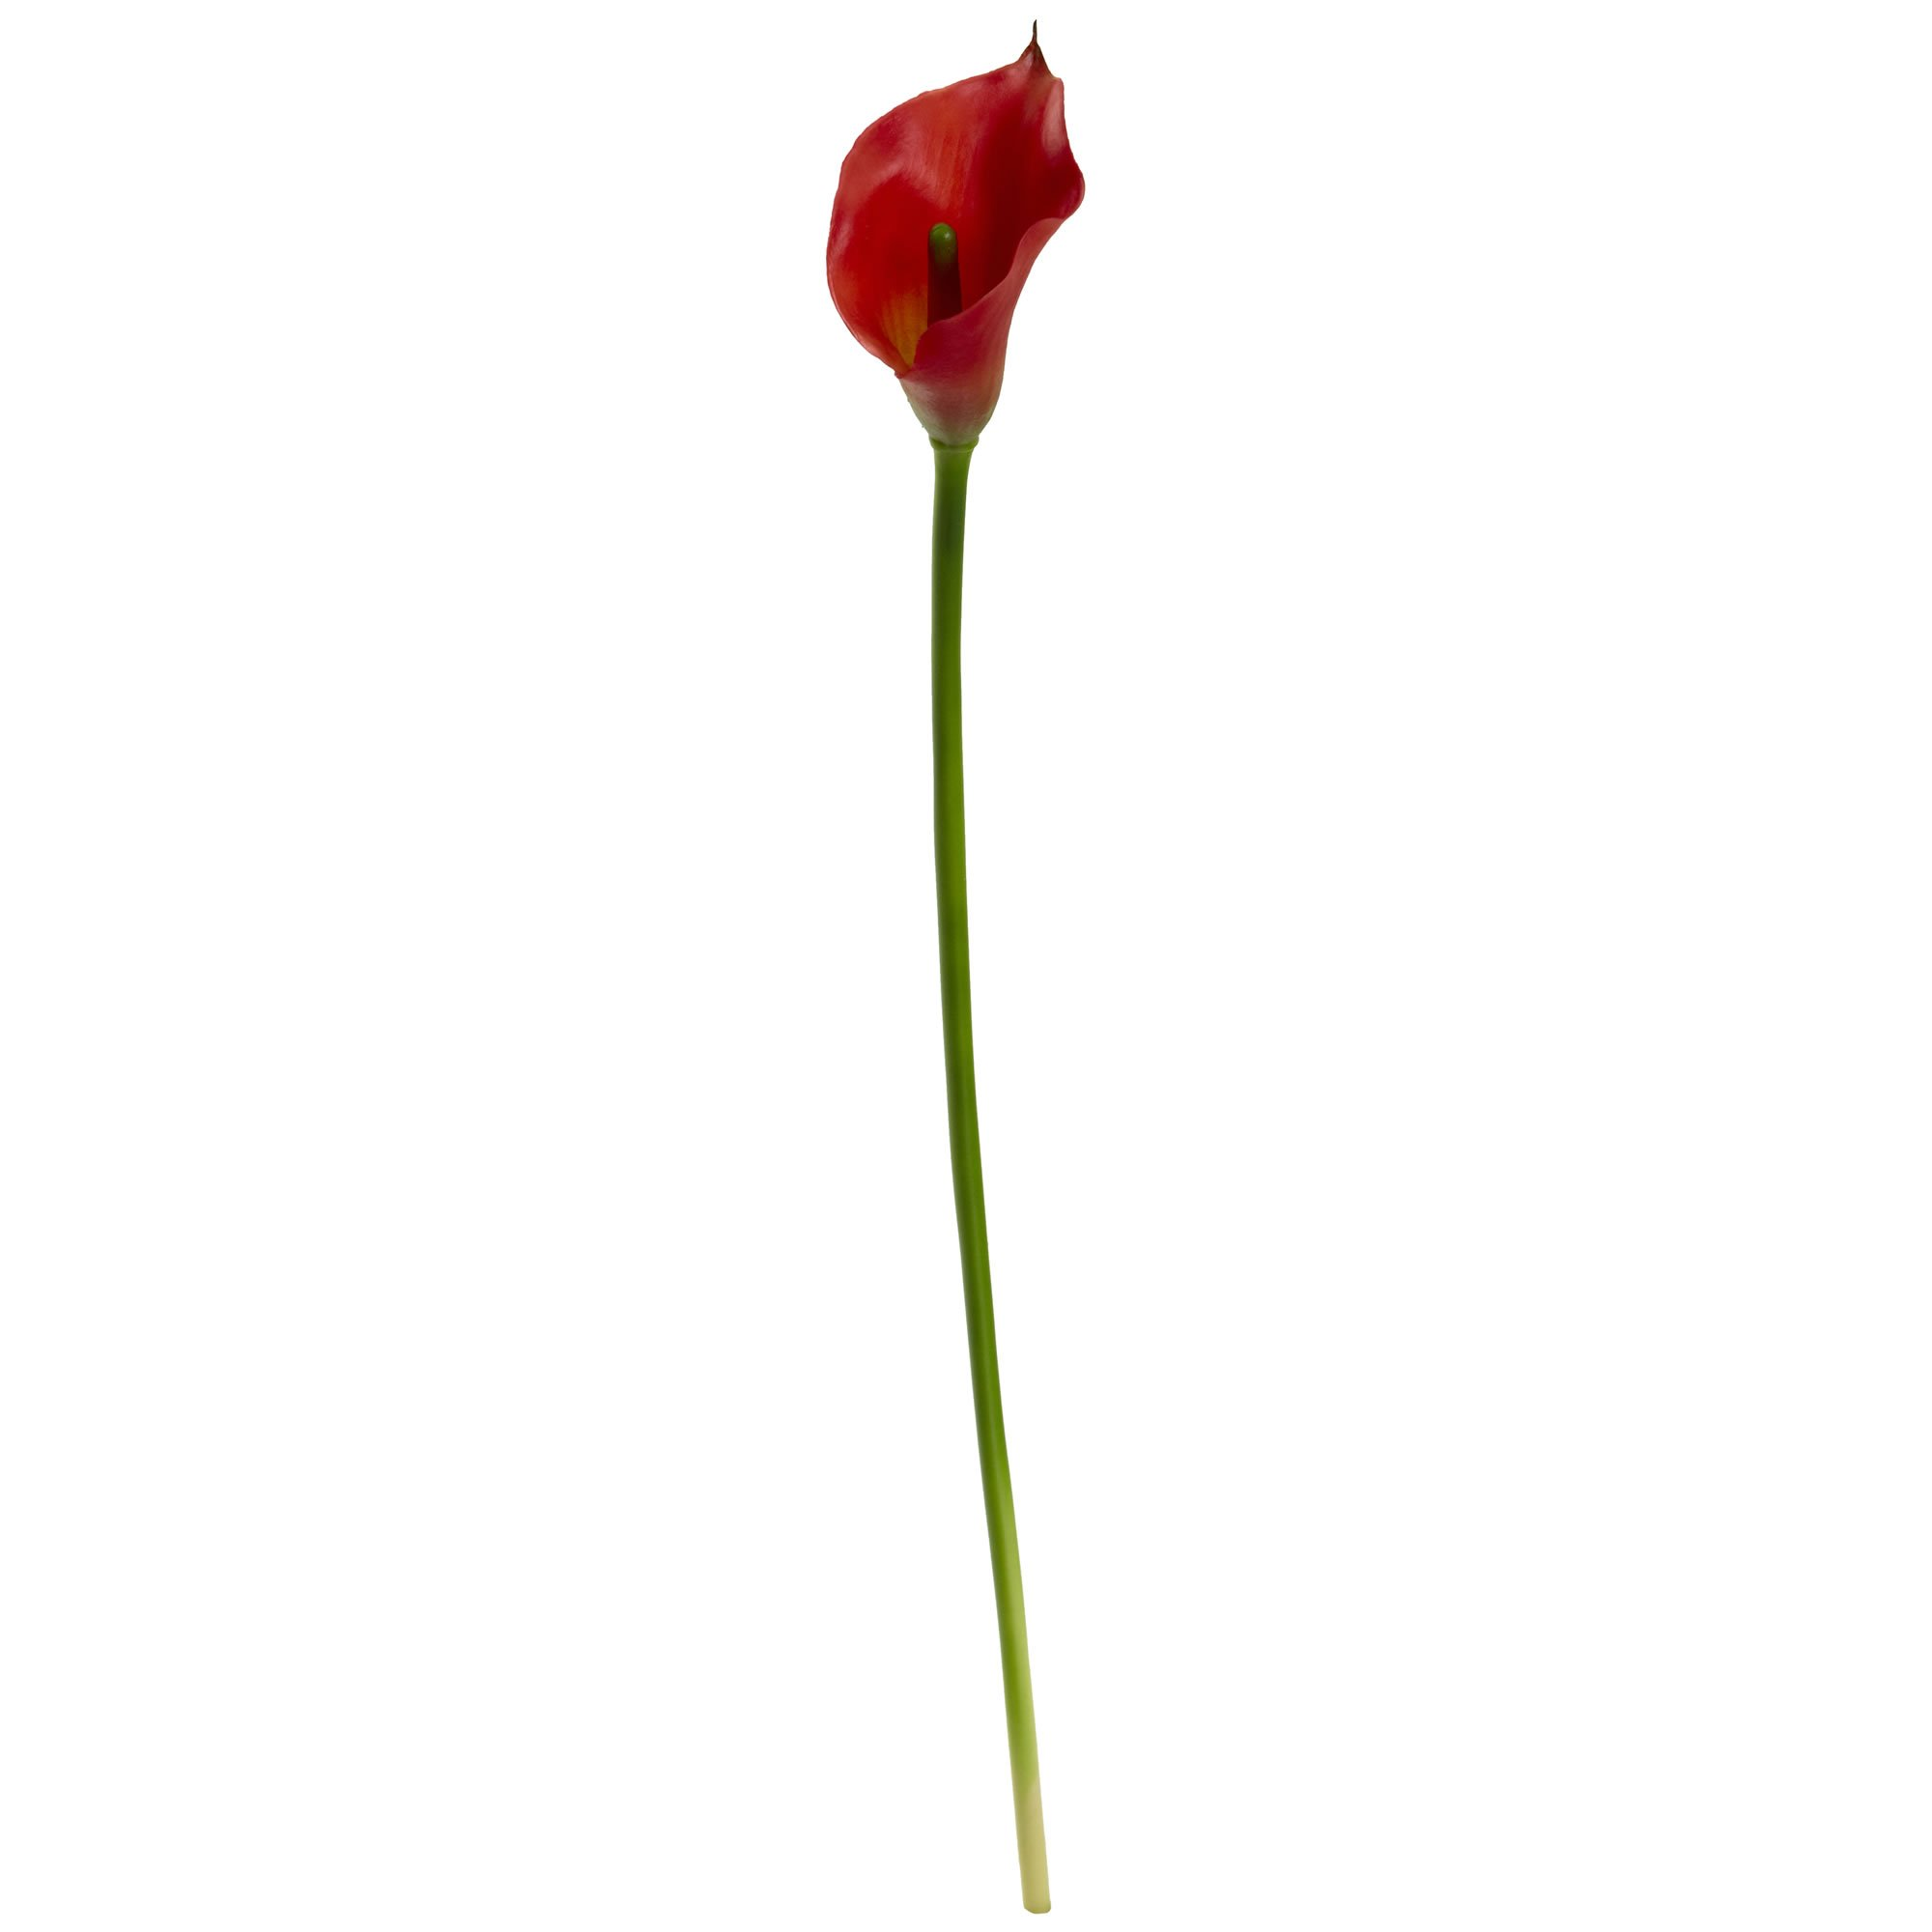 Nearly Natural 2113-S12-RD 19.5'' Calla Lily Flower Artificial Plant Red by Nearly Natural